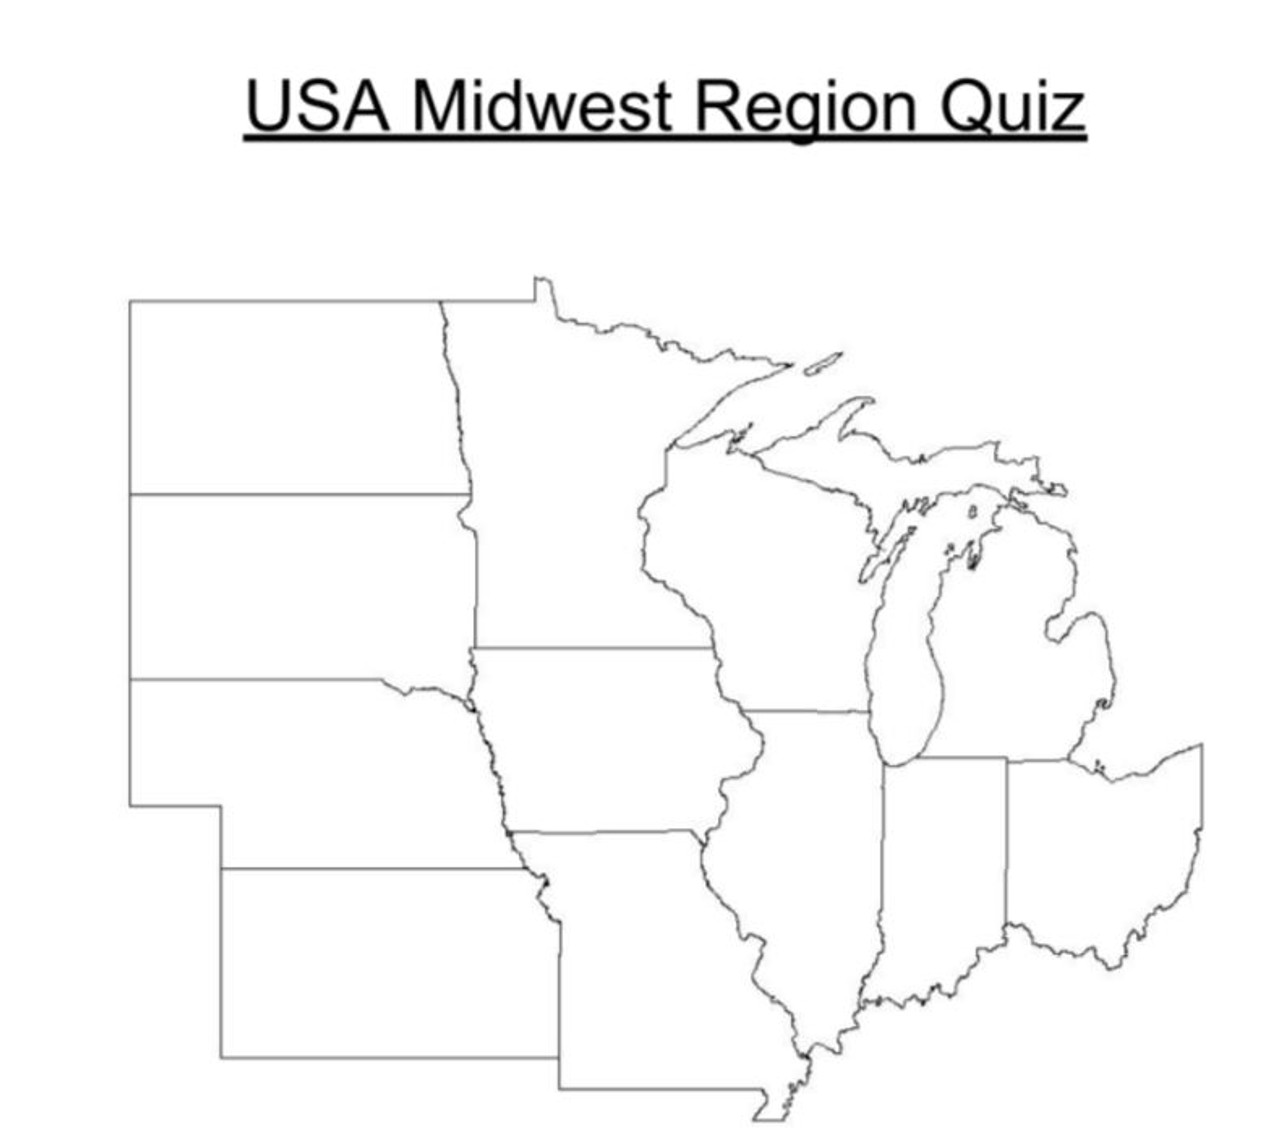 USA Midwest Region Quiz - Amped Up Learning